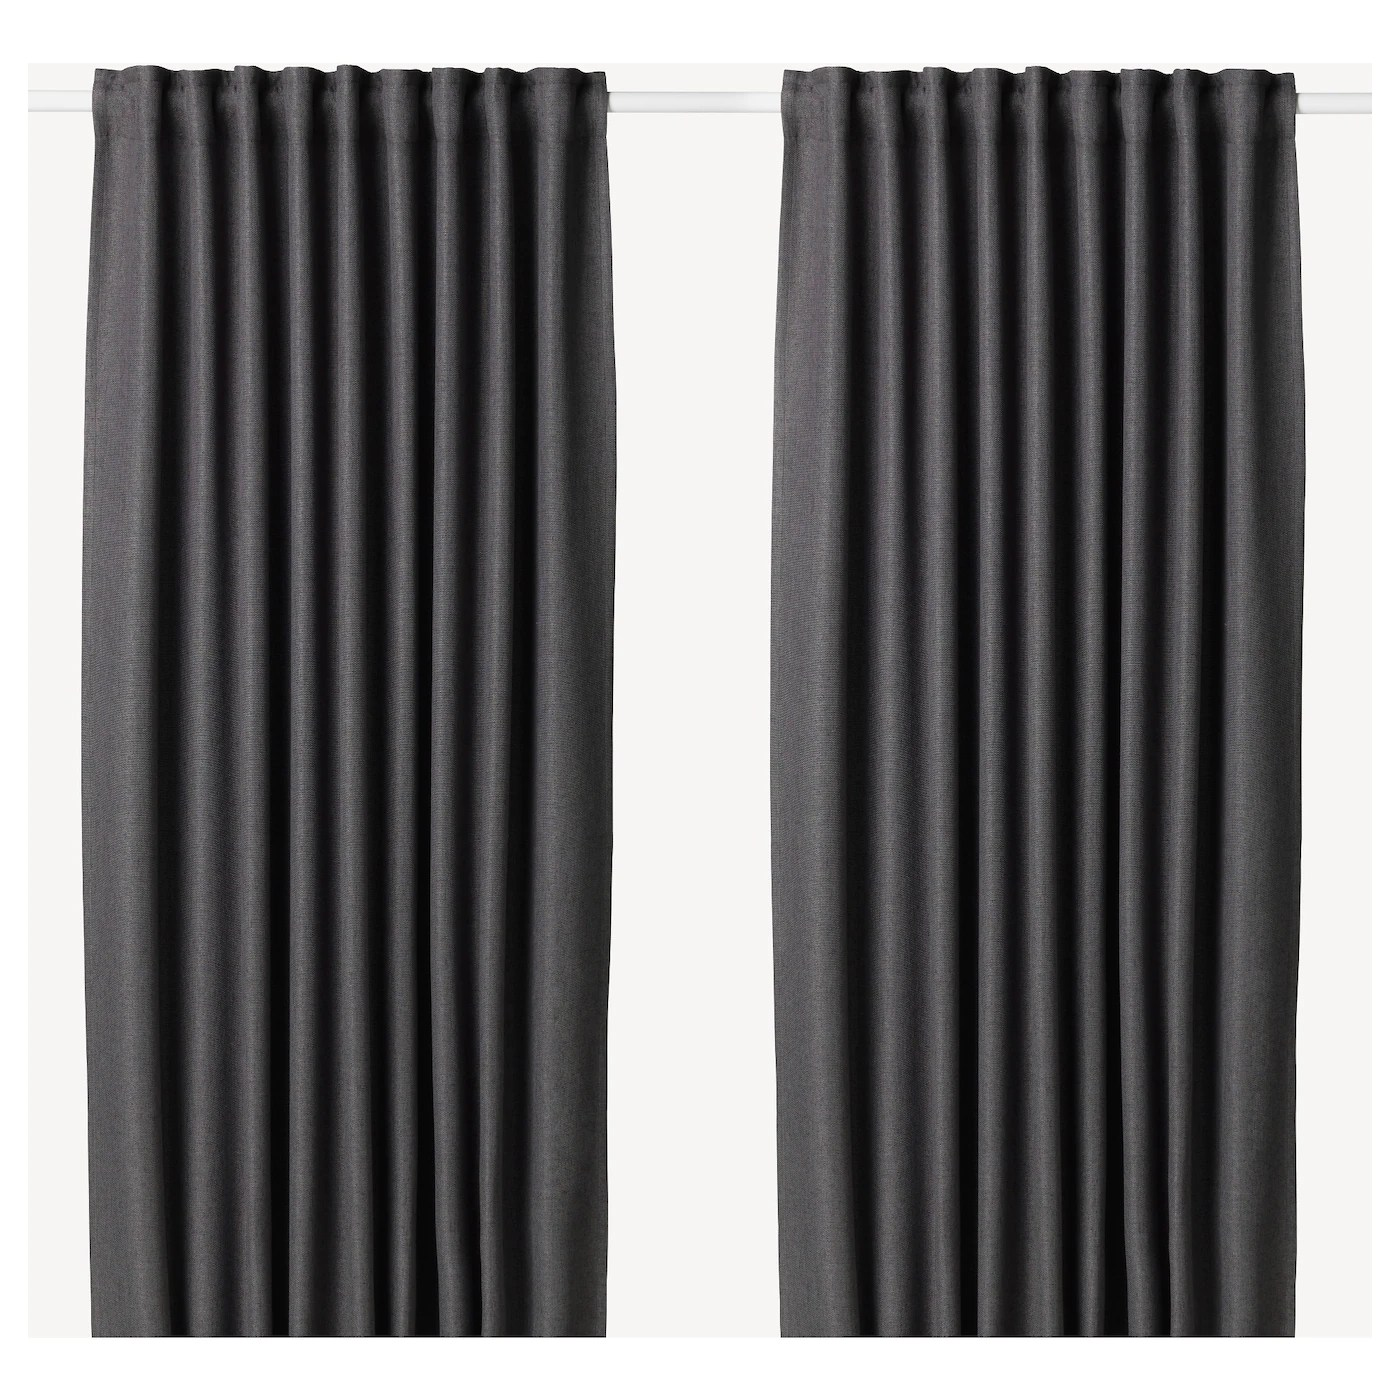 Annakajsa Room Darkening Curtains 1 Pair Grey Ikea - Ikea Vorhang Annakajsa